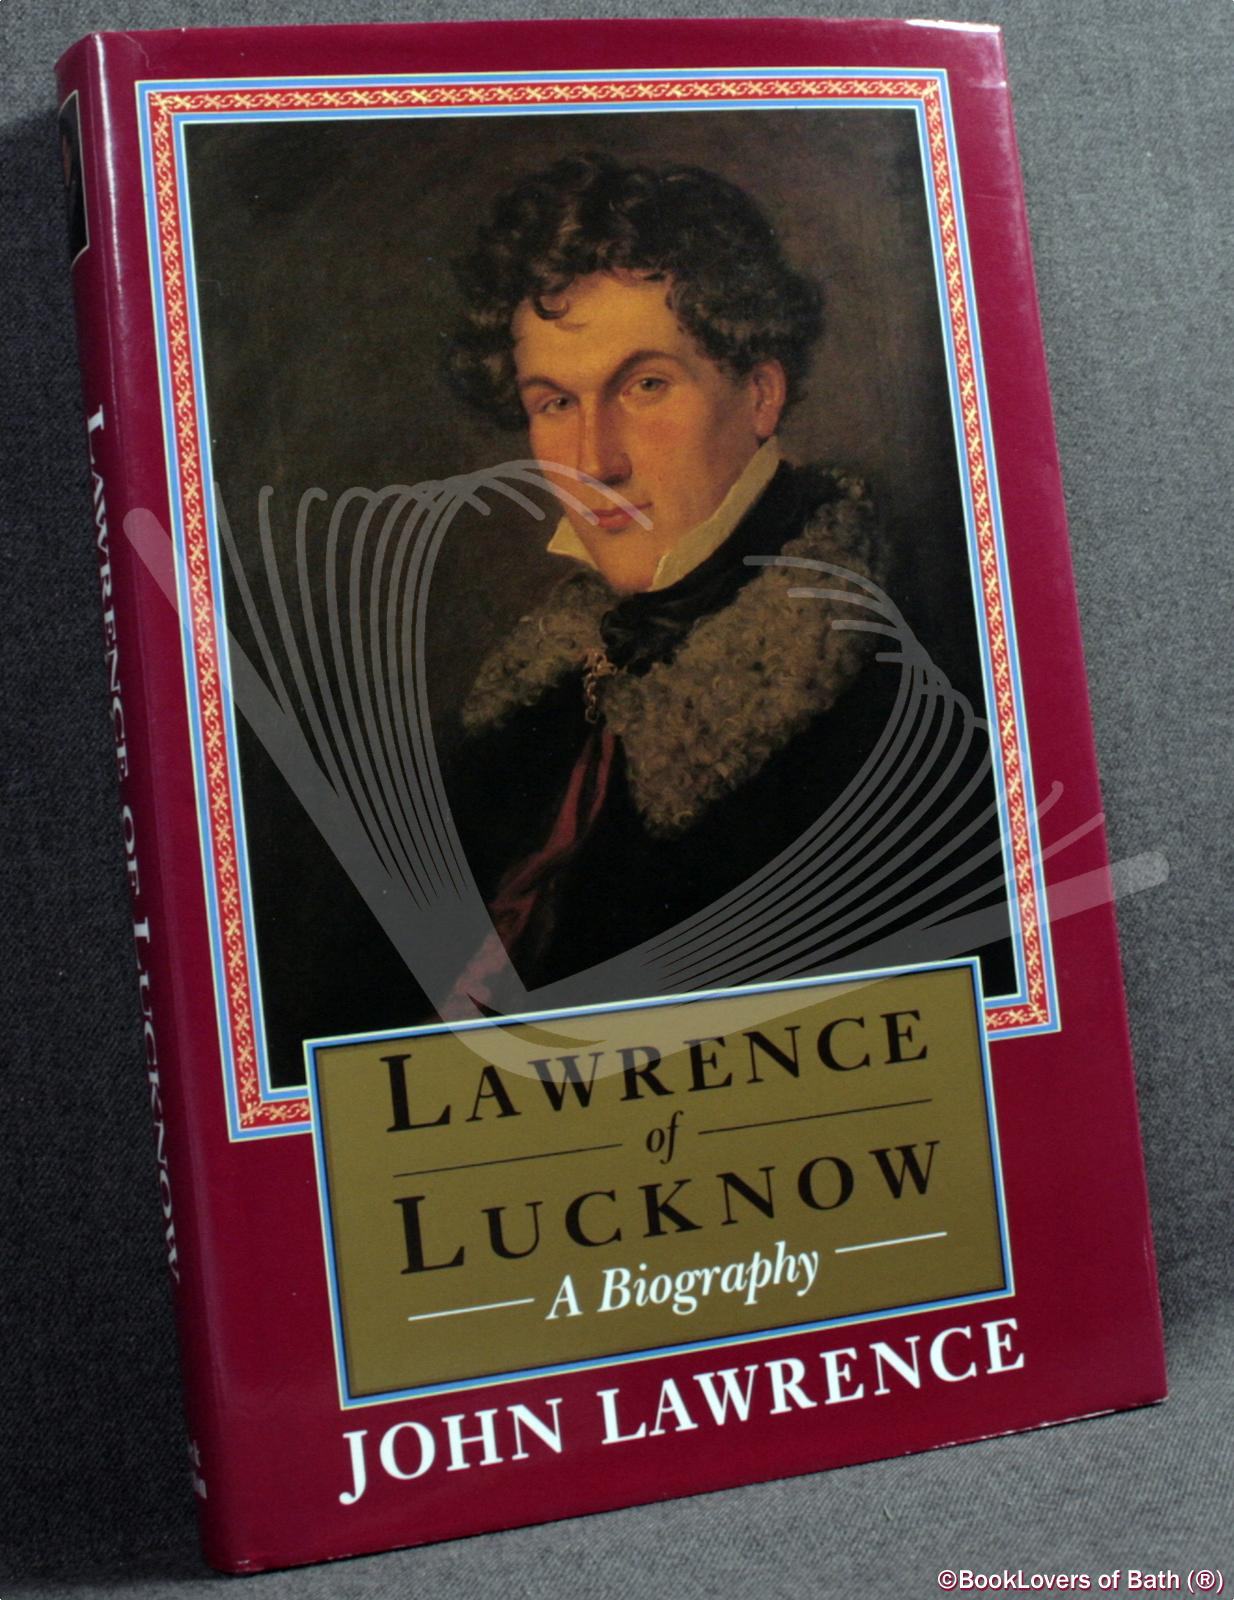 Lawrence of Lucknow: A Biography - John Lawrence